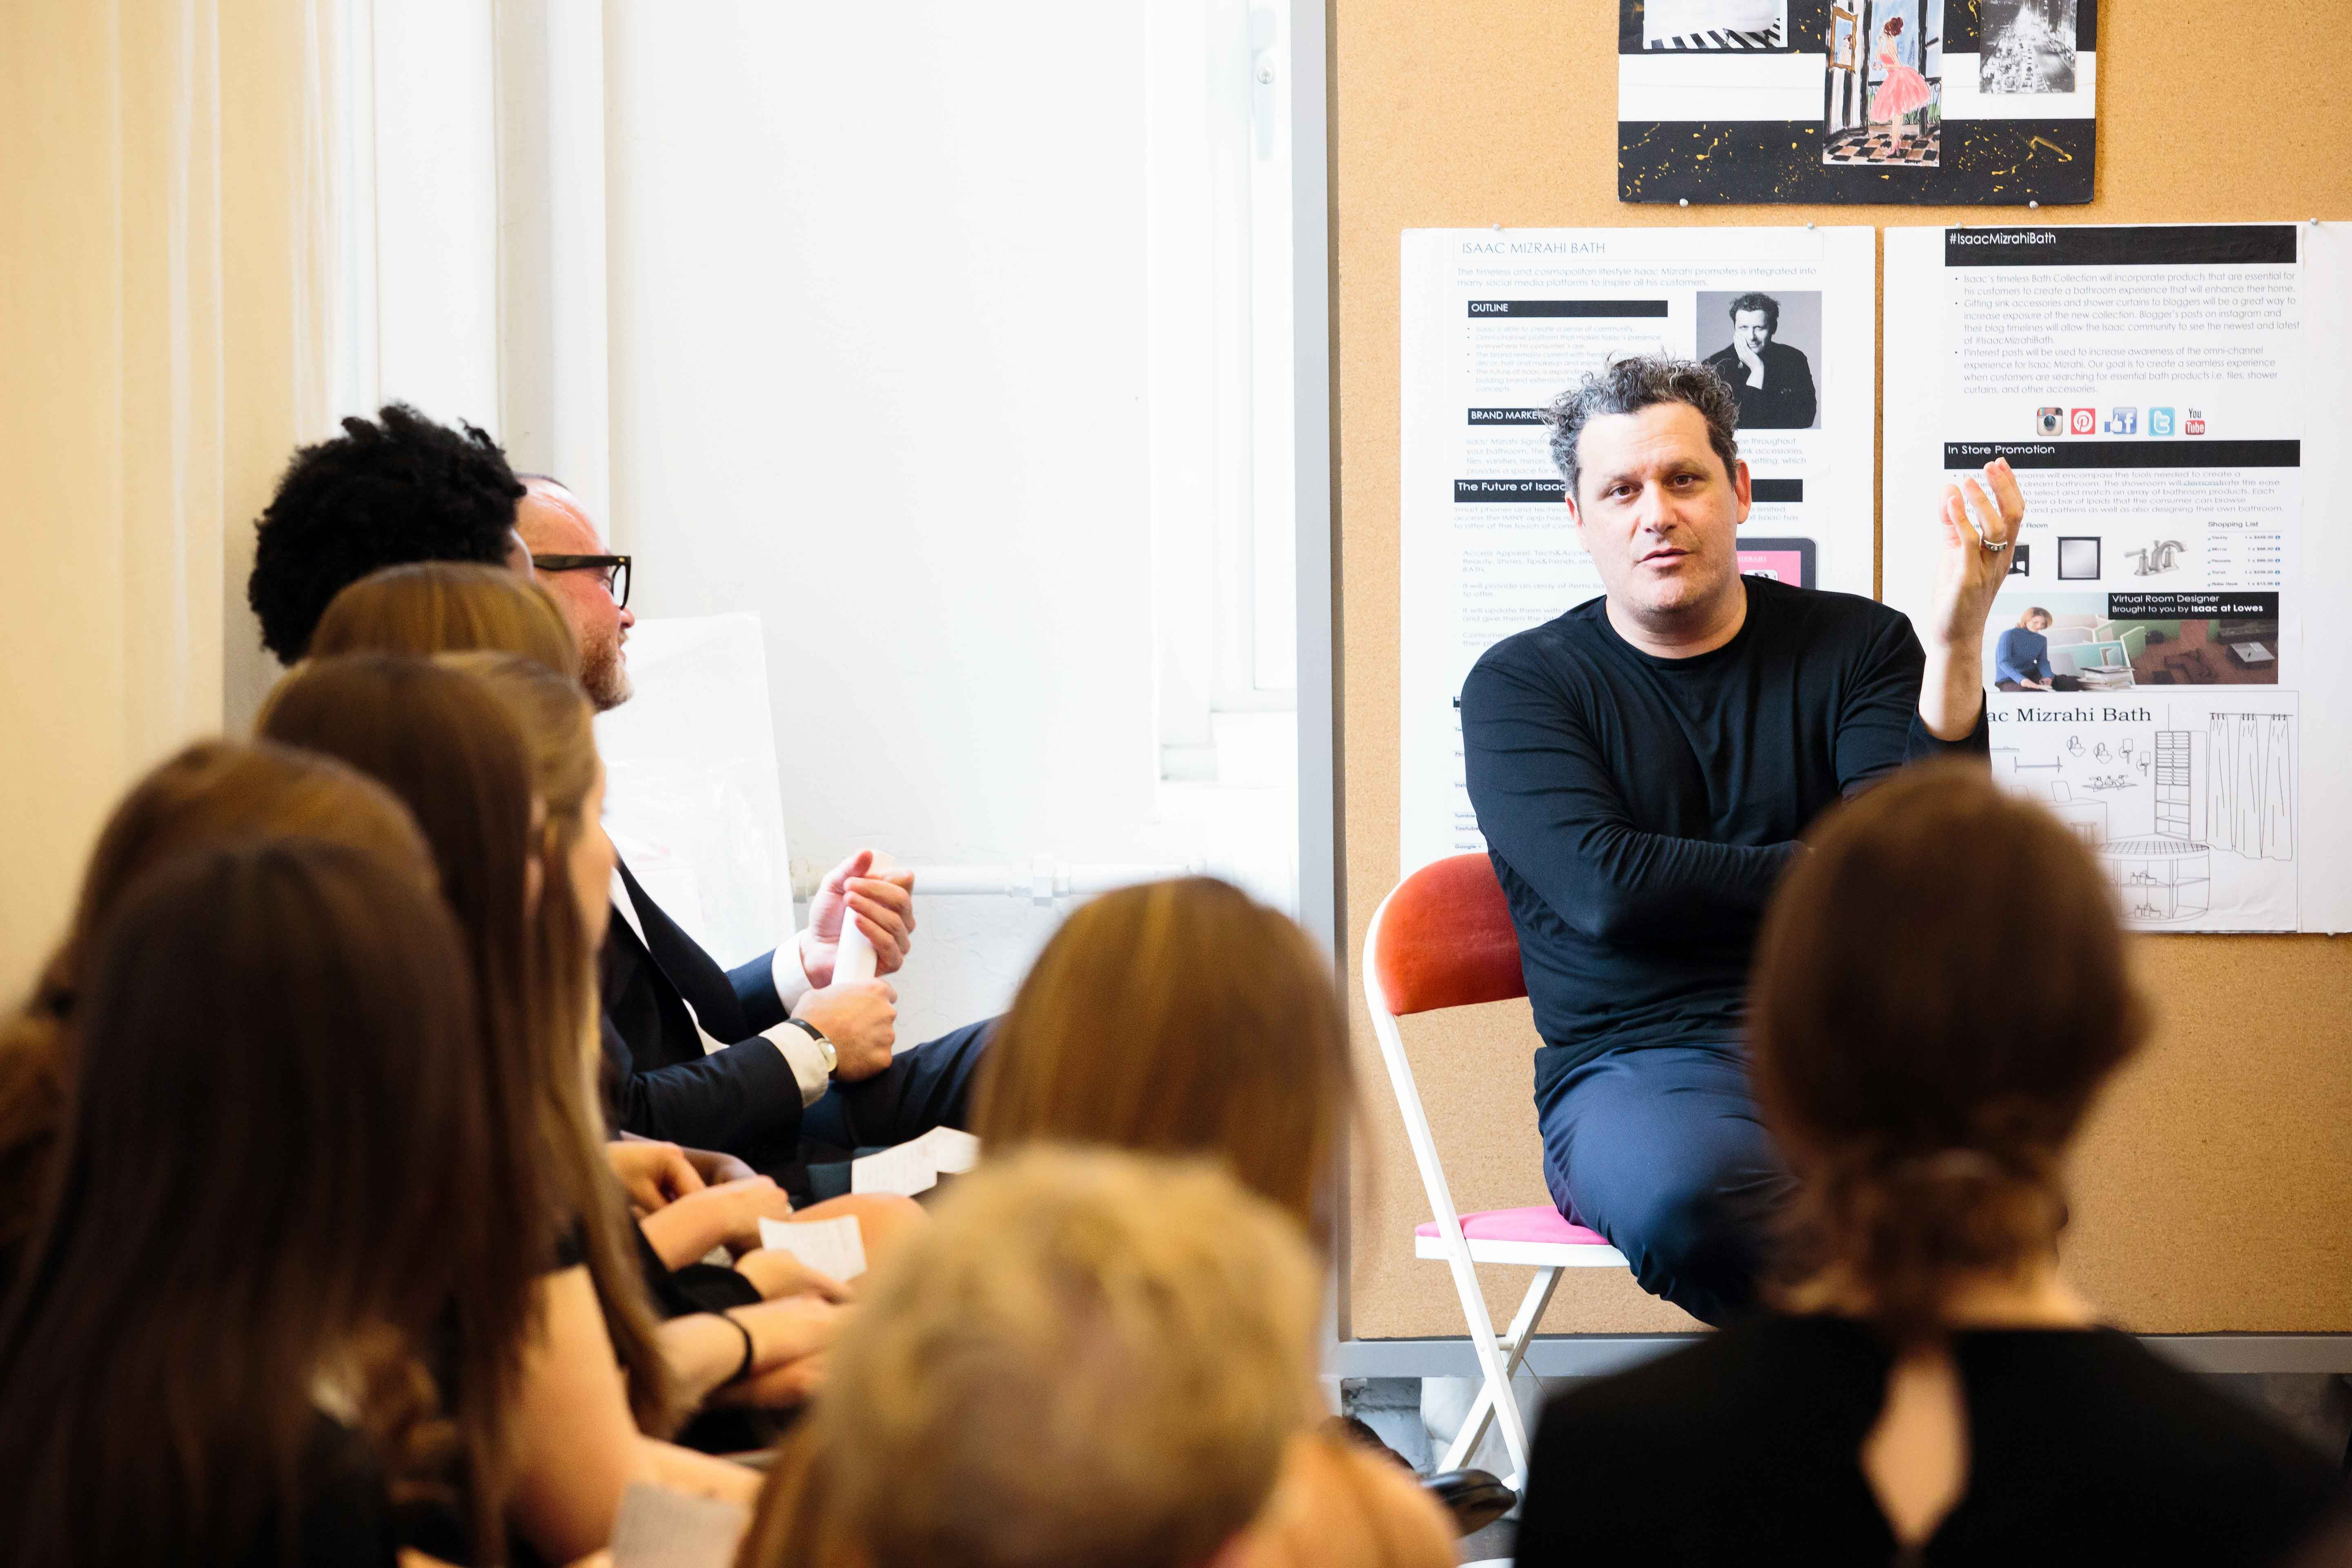 Designer Isaac Mizrahi Talks With Students In The New York Immersion Course